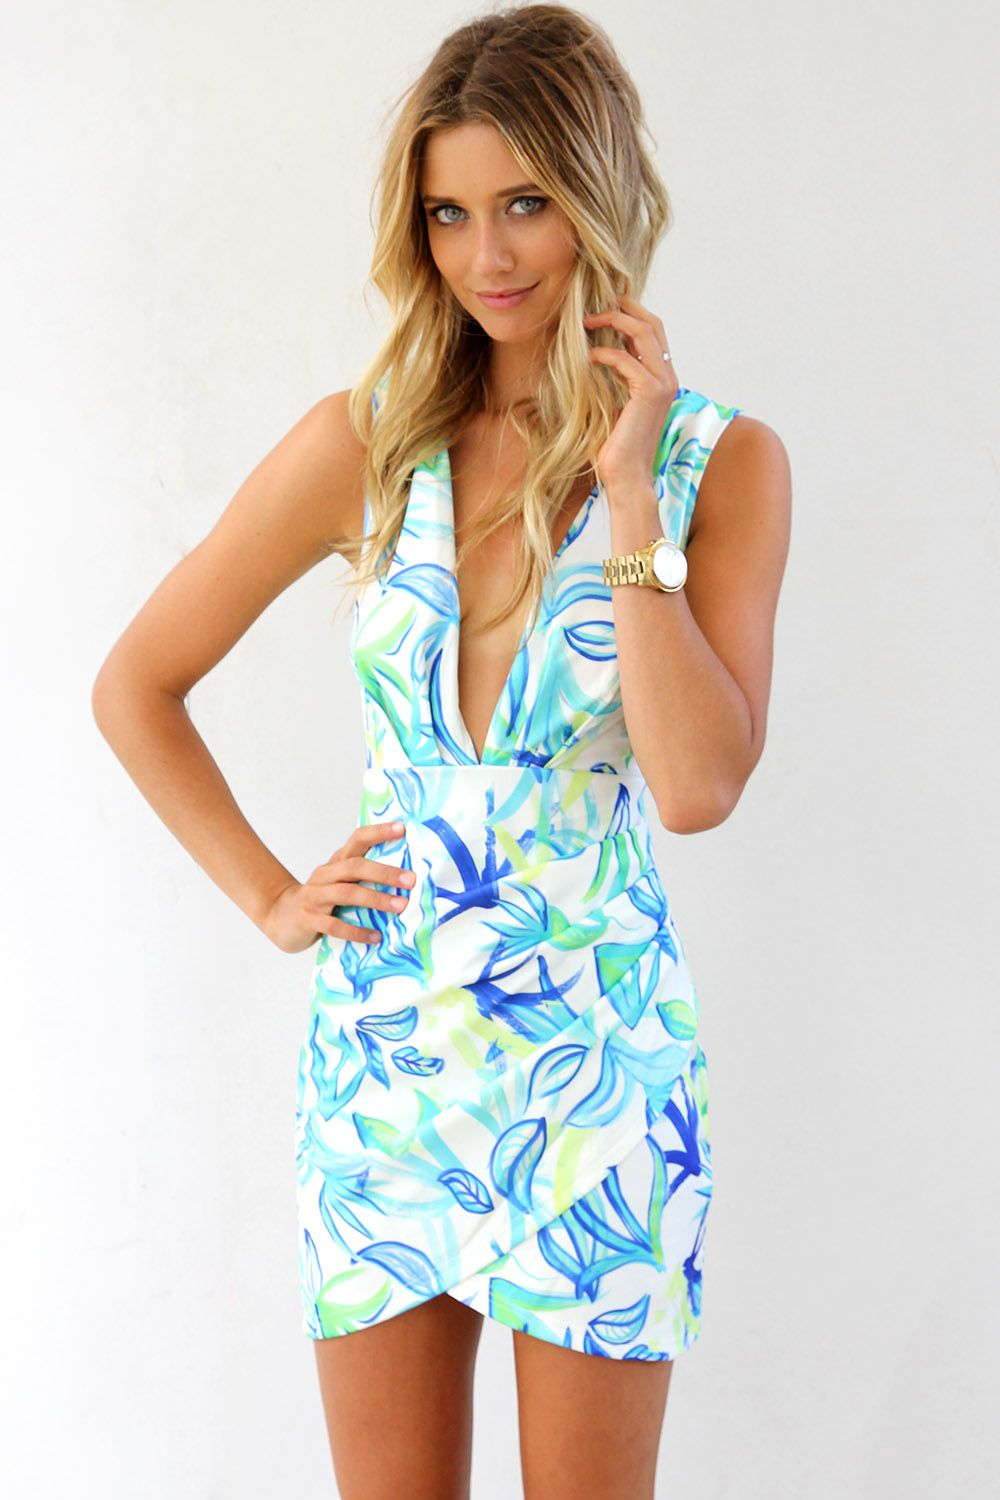 e8183ea6d4d 22 of the Cutest (and Sexiest) Sundress Looks | ❃DRESS LOVERS ...